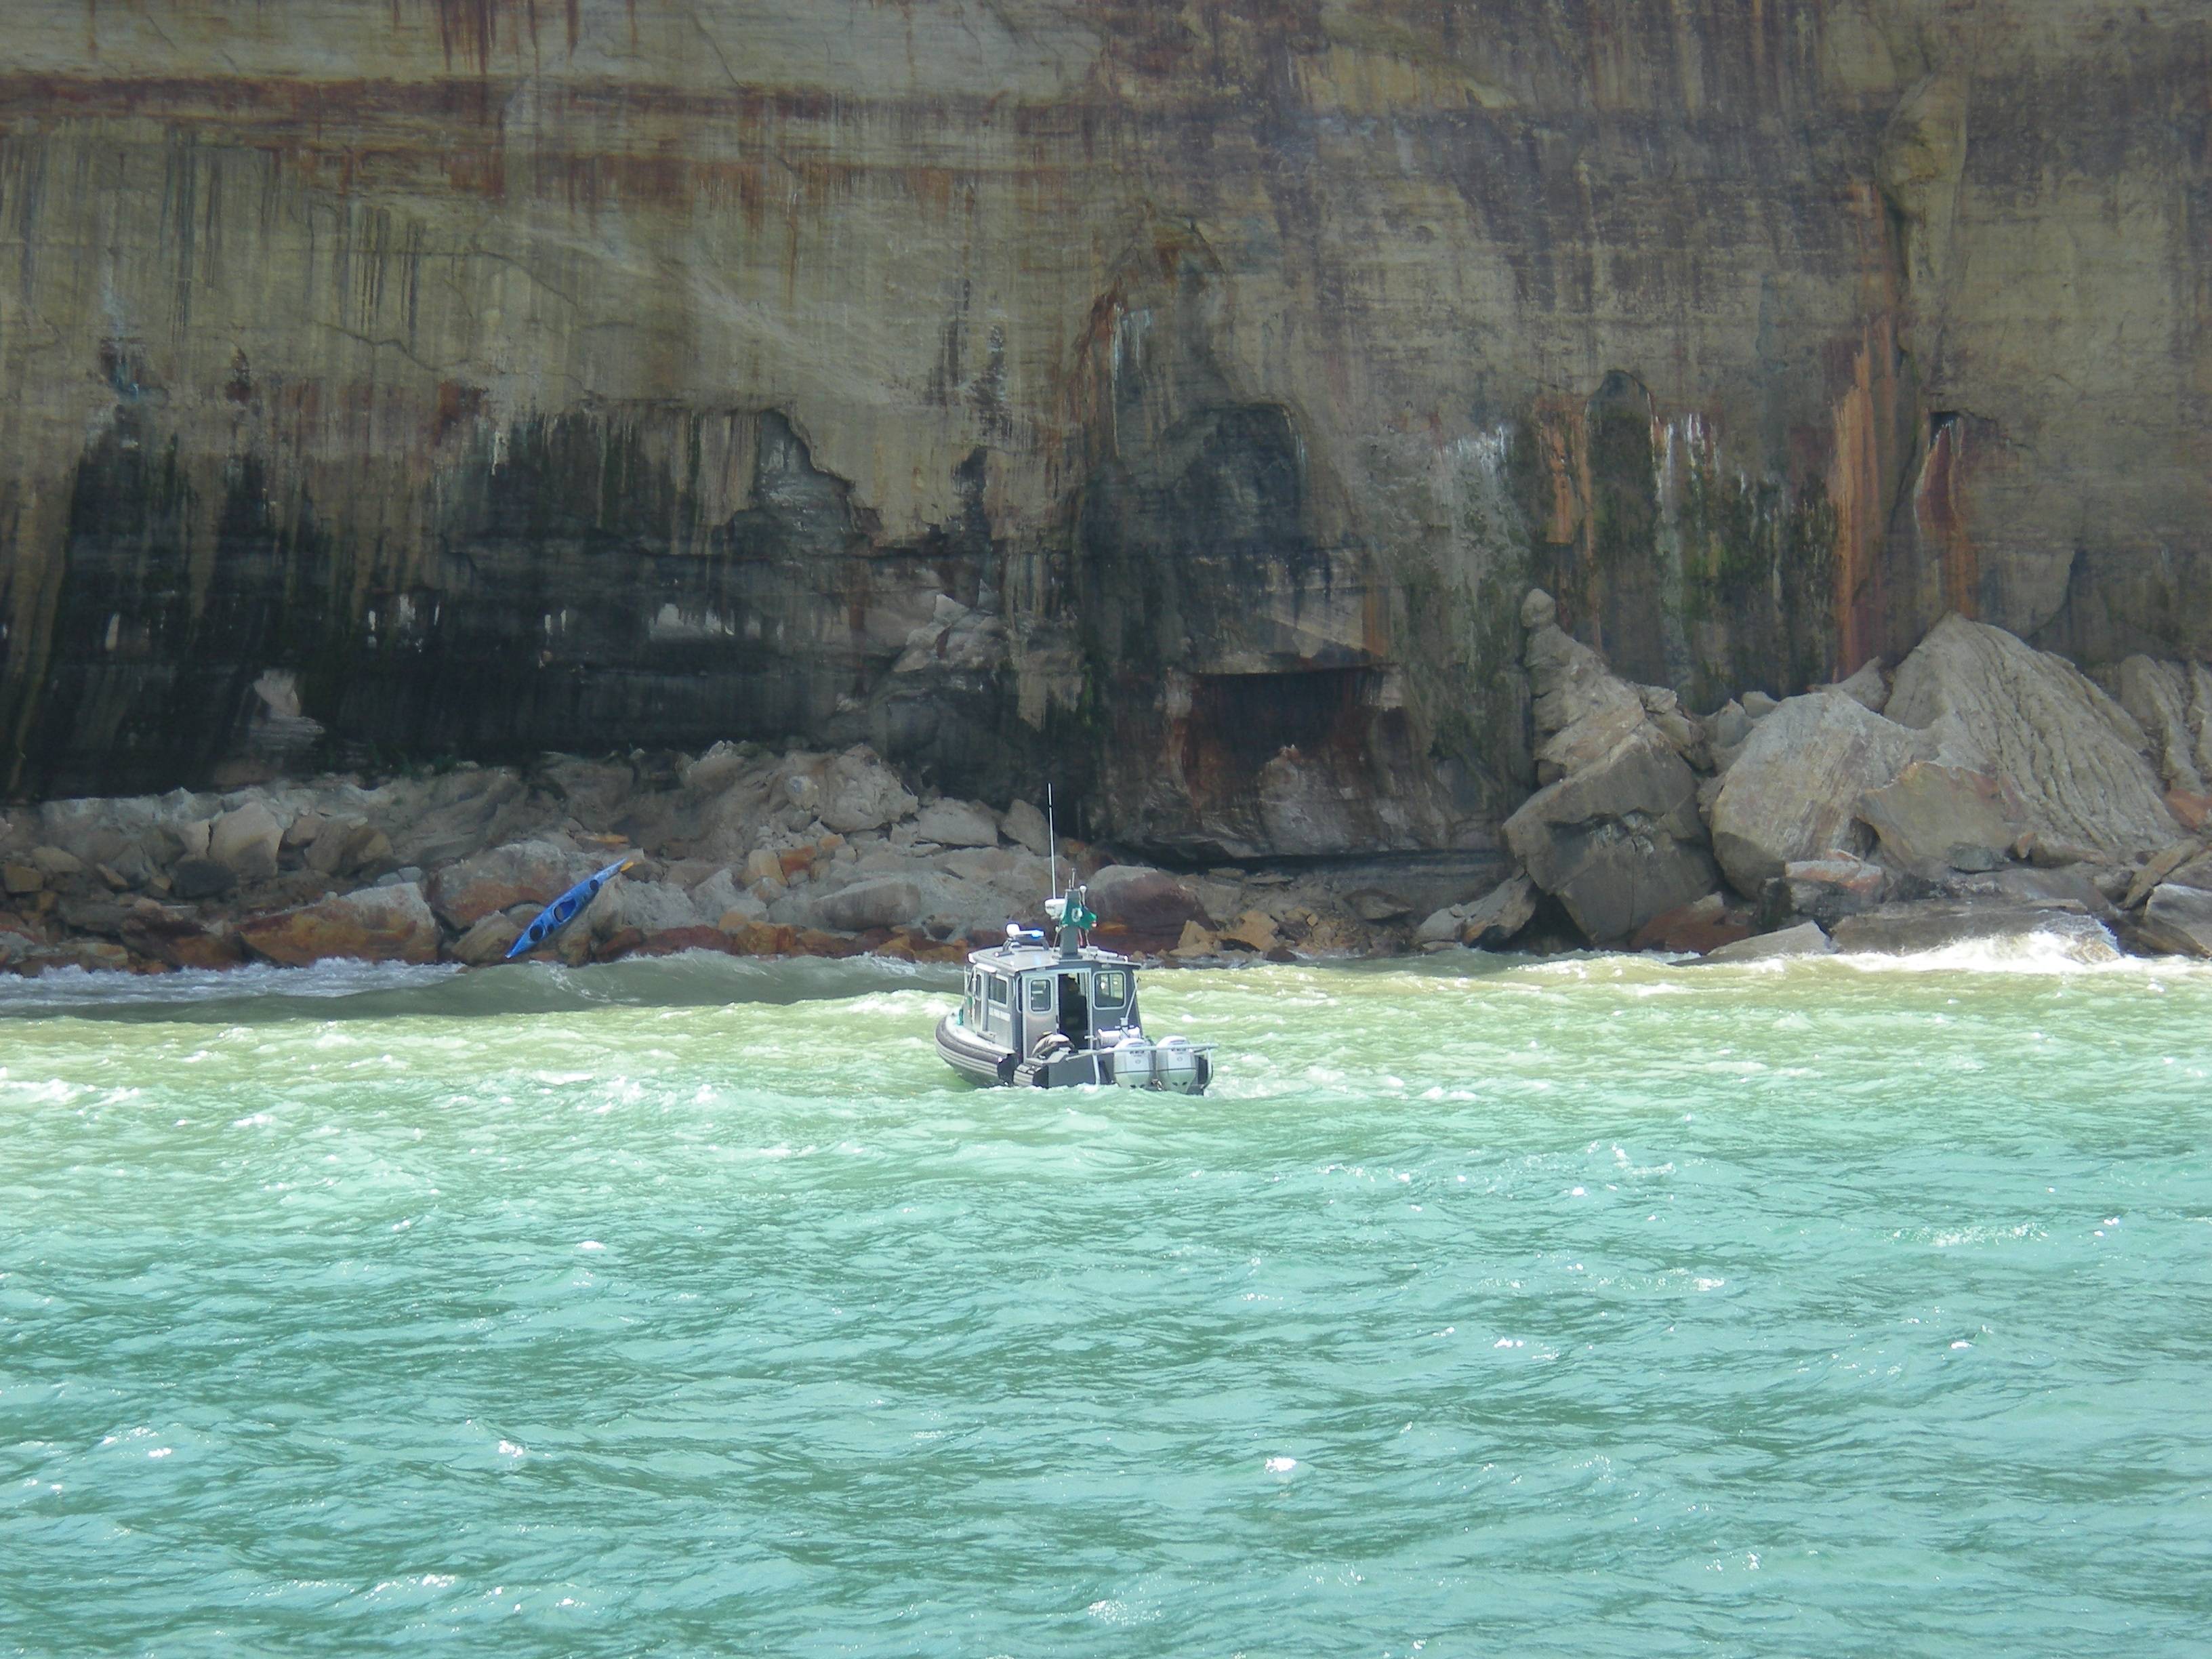 Kayak rescue along Pictured Rocks cliffs